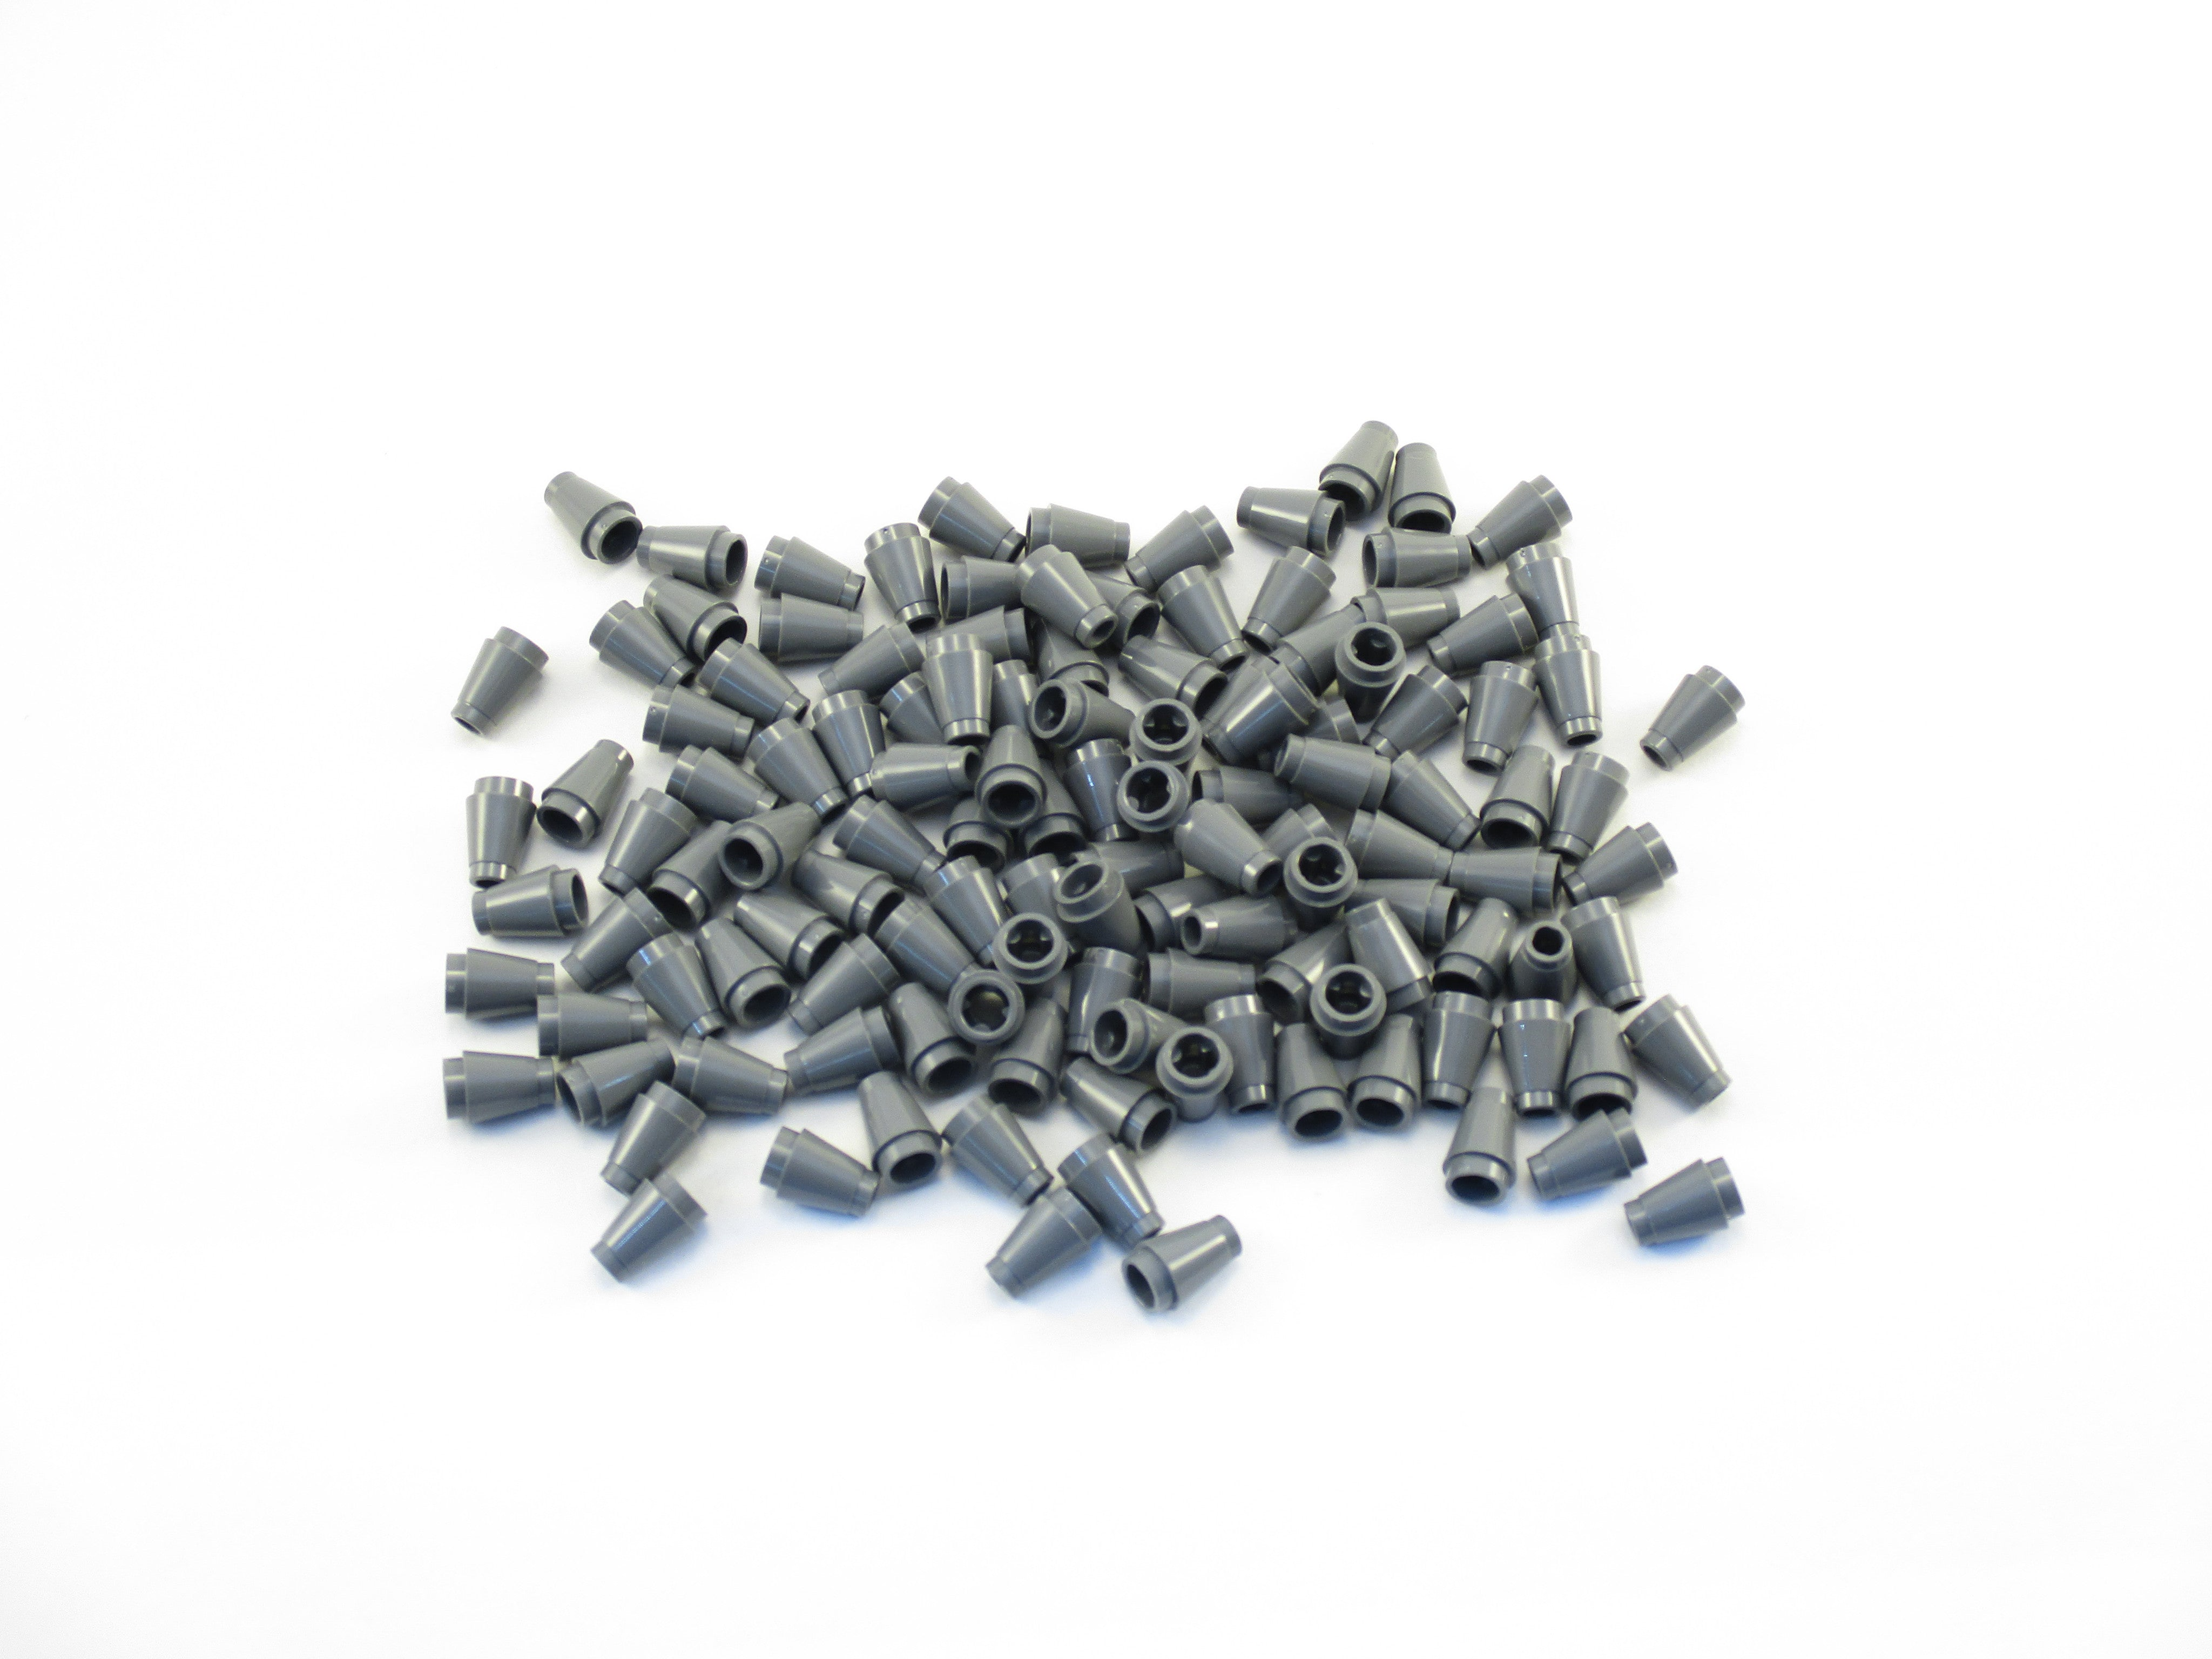 Lego 100 New Dark Bluish Gray Plates Modified 1 x 4 with 2 Studs without Groove